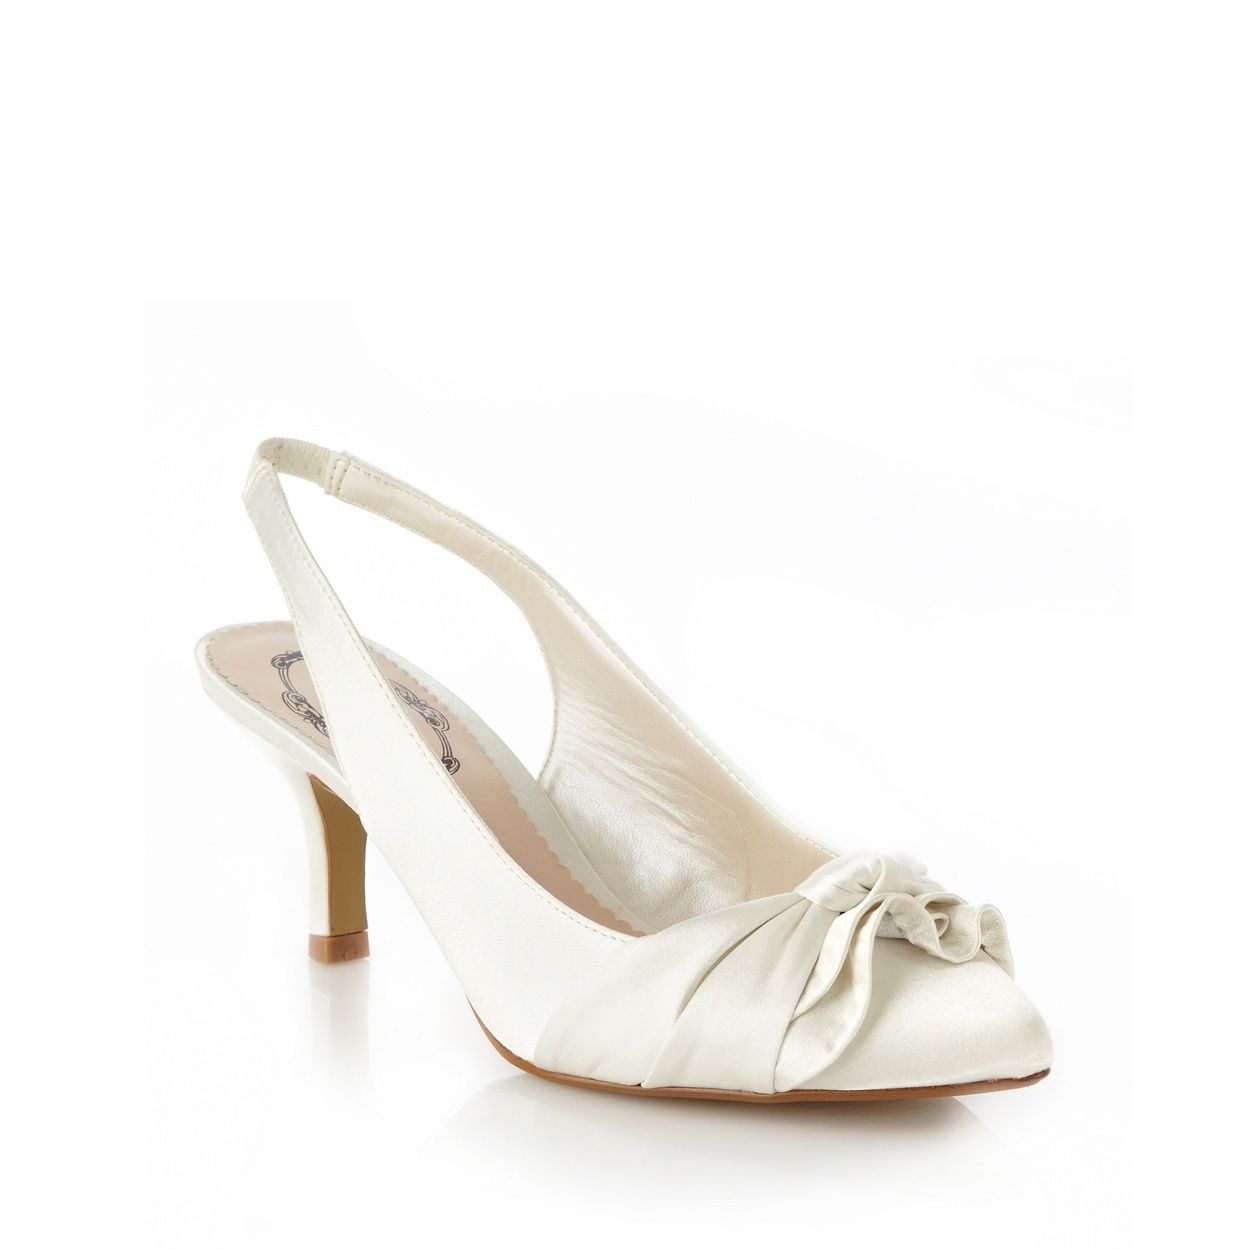 5ad25569119 Debut Ivory Mid Heel Satin Court Shoes With Knotted Bow Trim- at  Debenhams.com £29